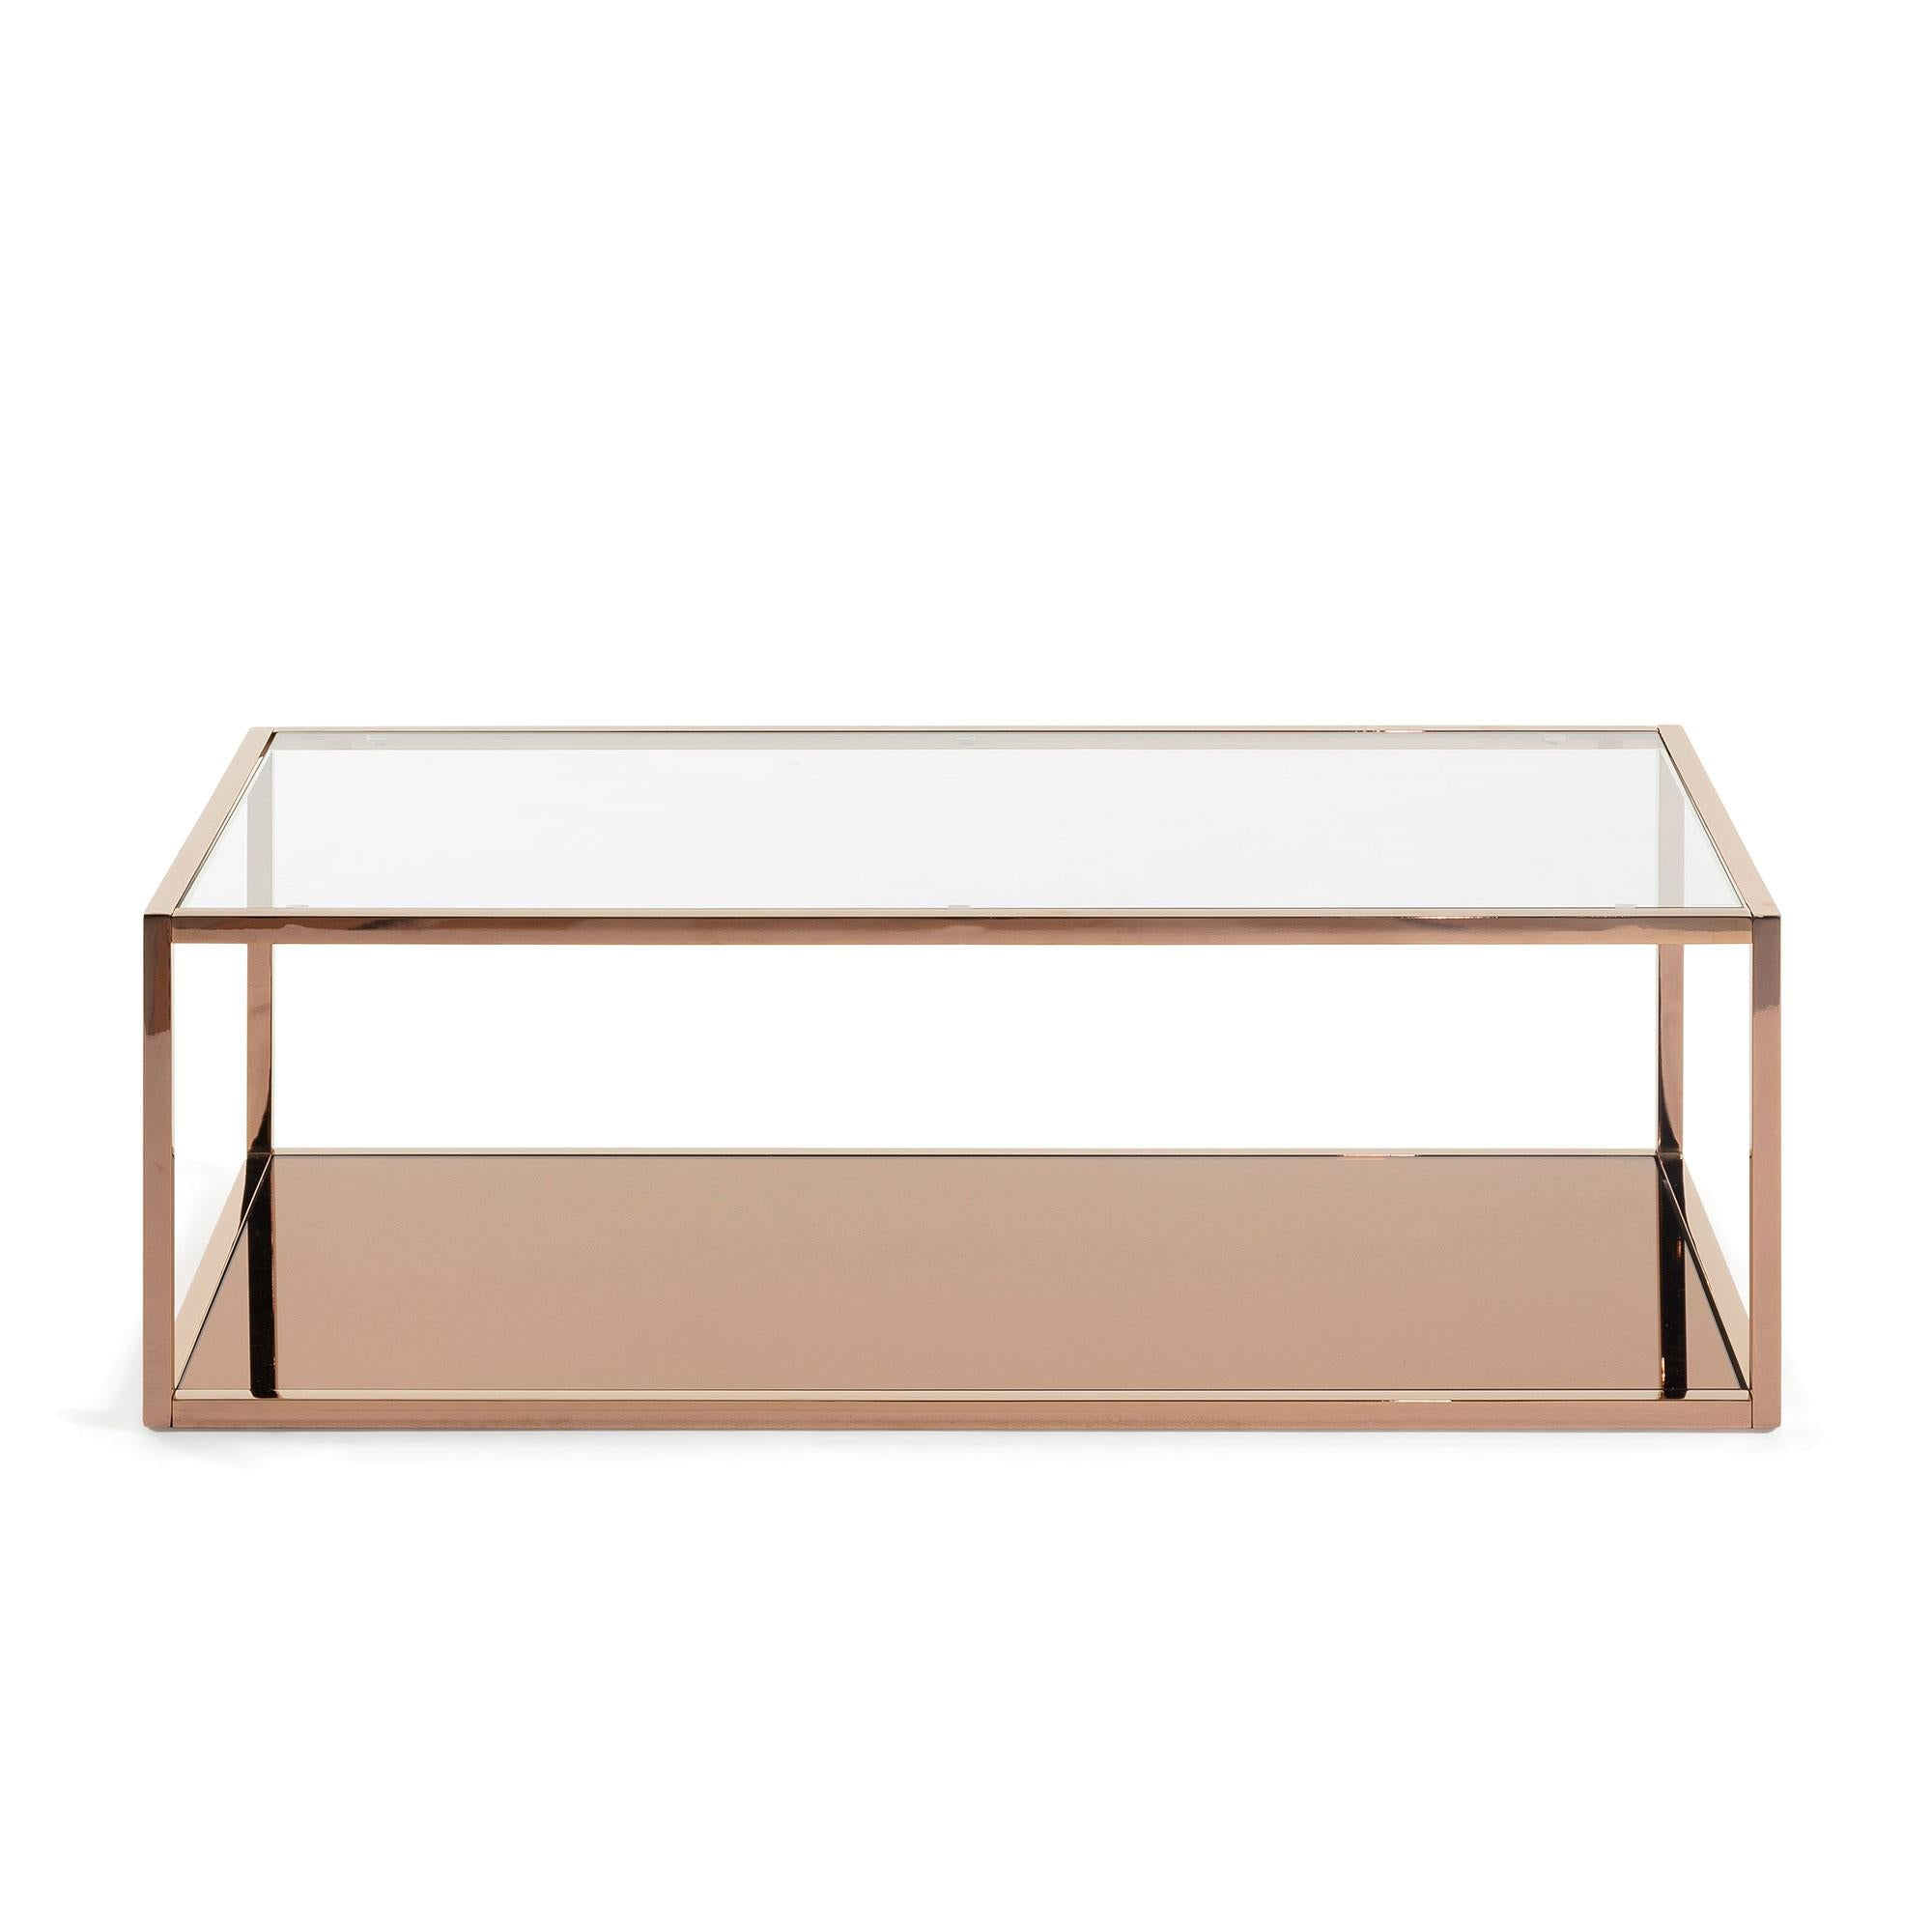 Greenhill Copper & Glass Coffee Table - Rectangular, Coffee Table - Home-Buy Interiors